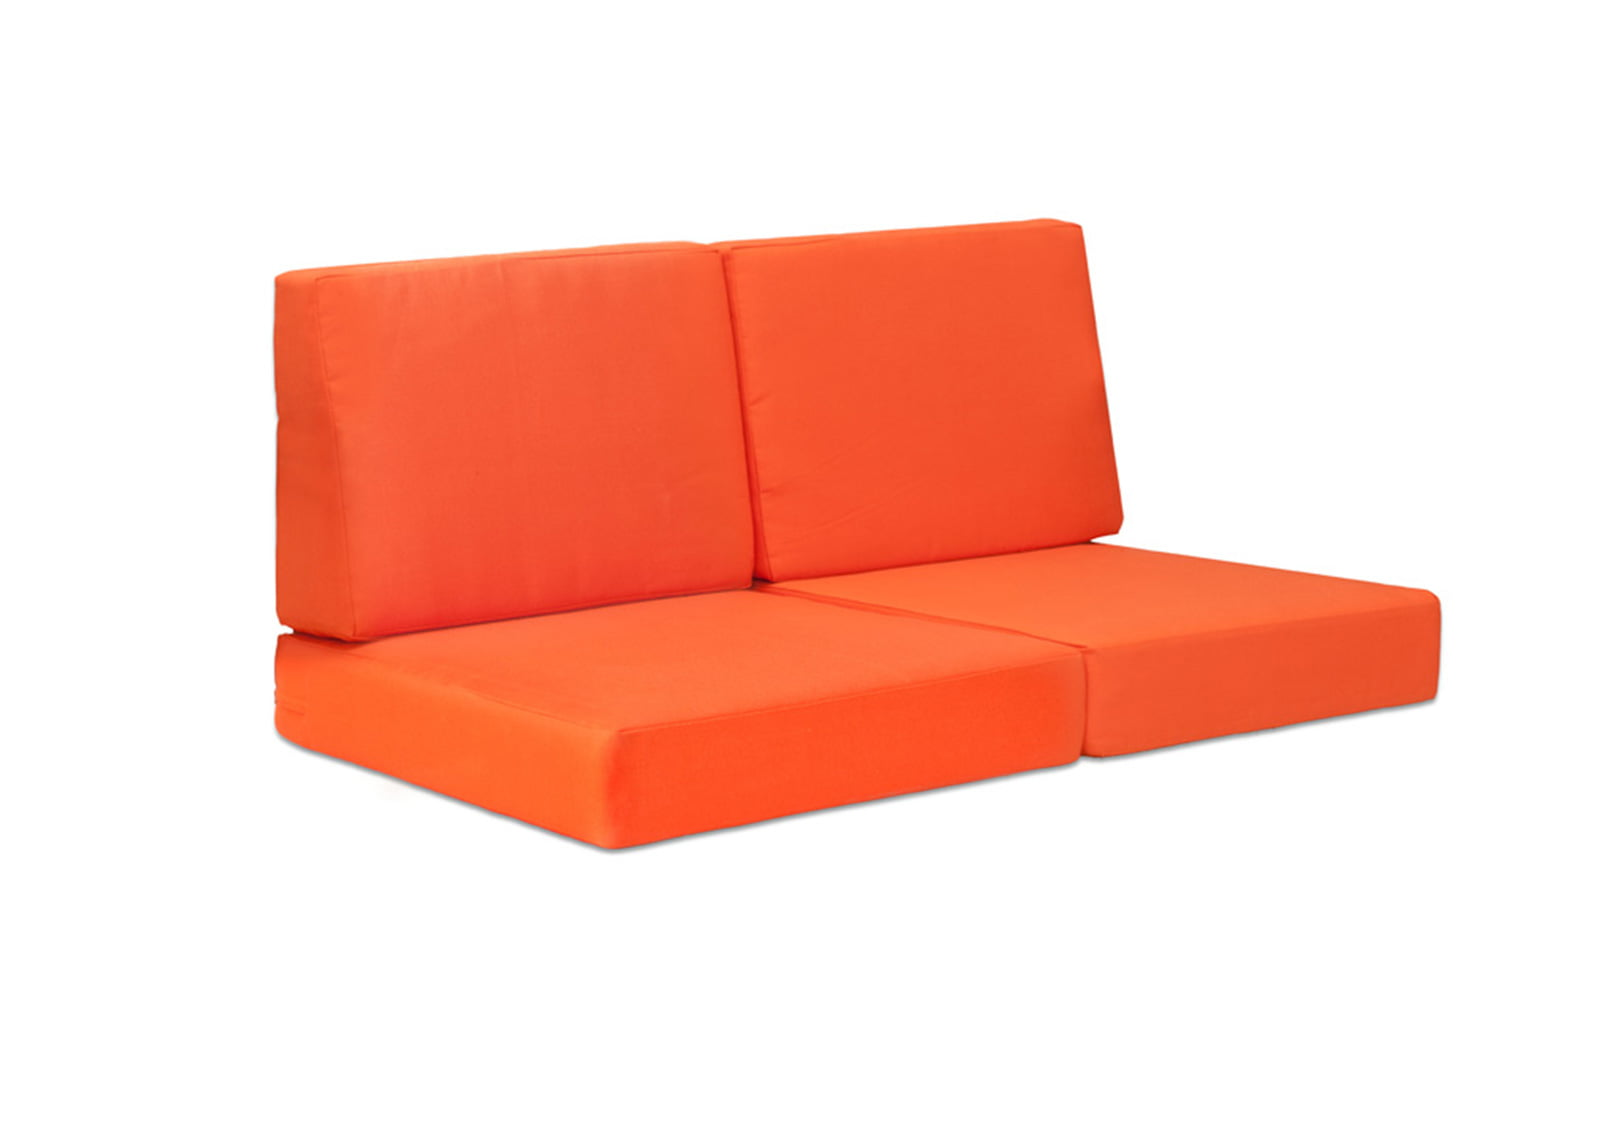 orange color sofa diy sleeper cosmopolitan cushions furnishplus